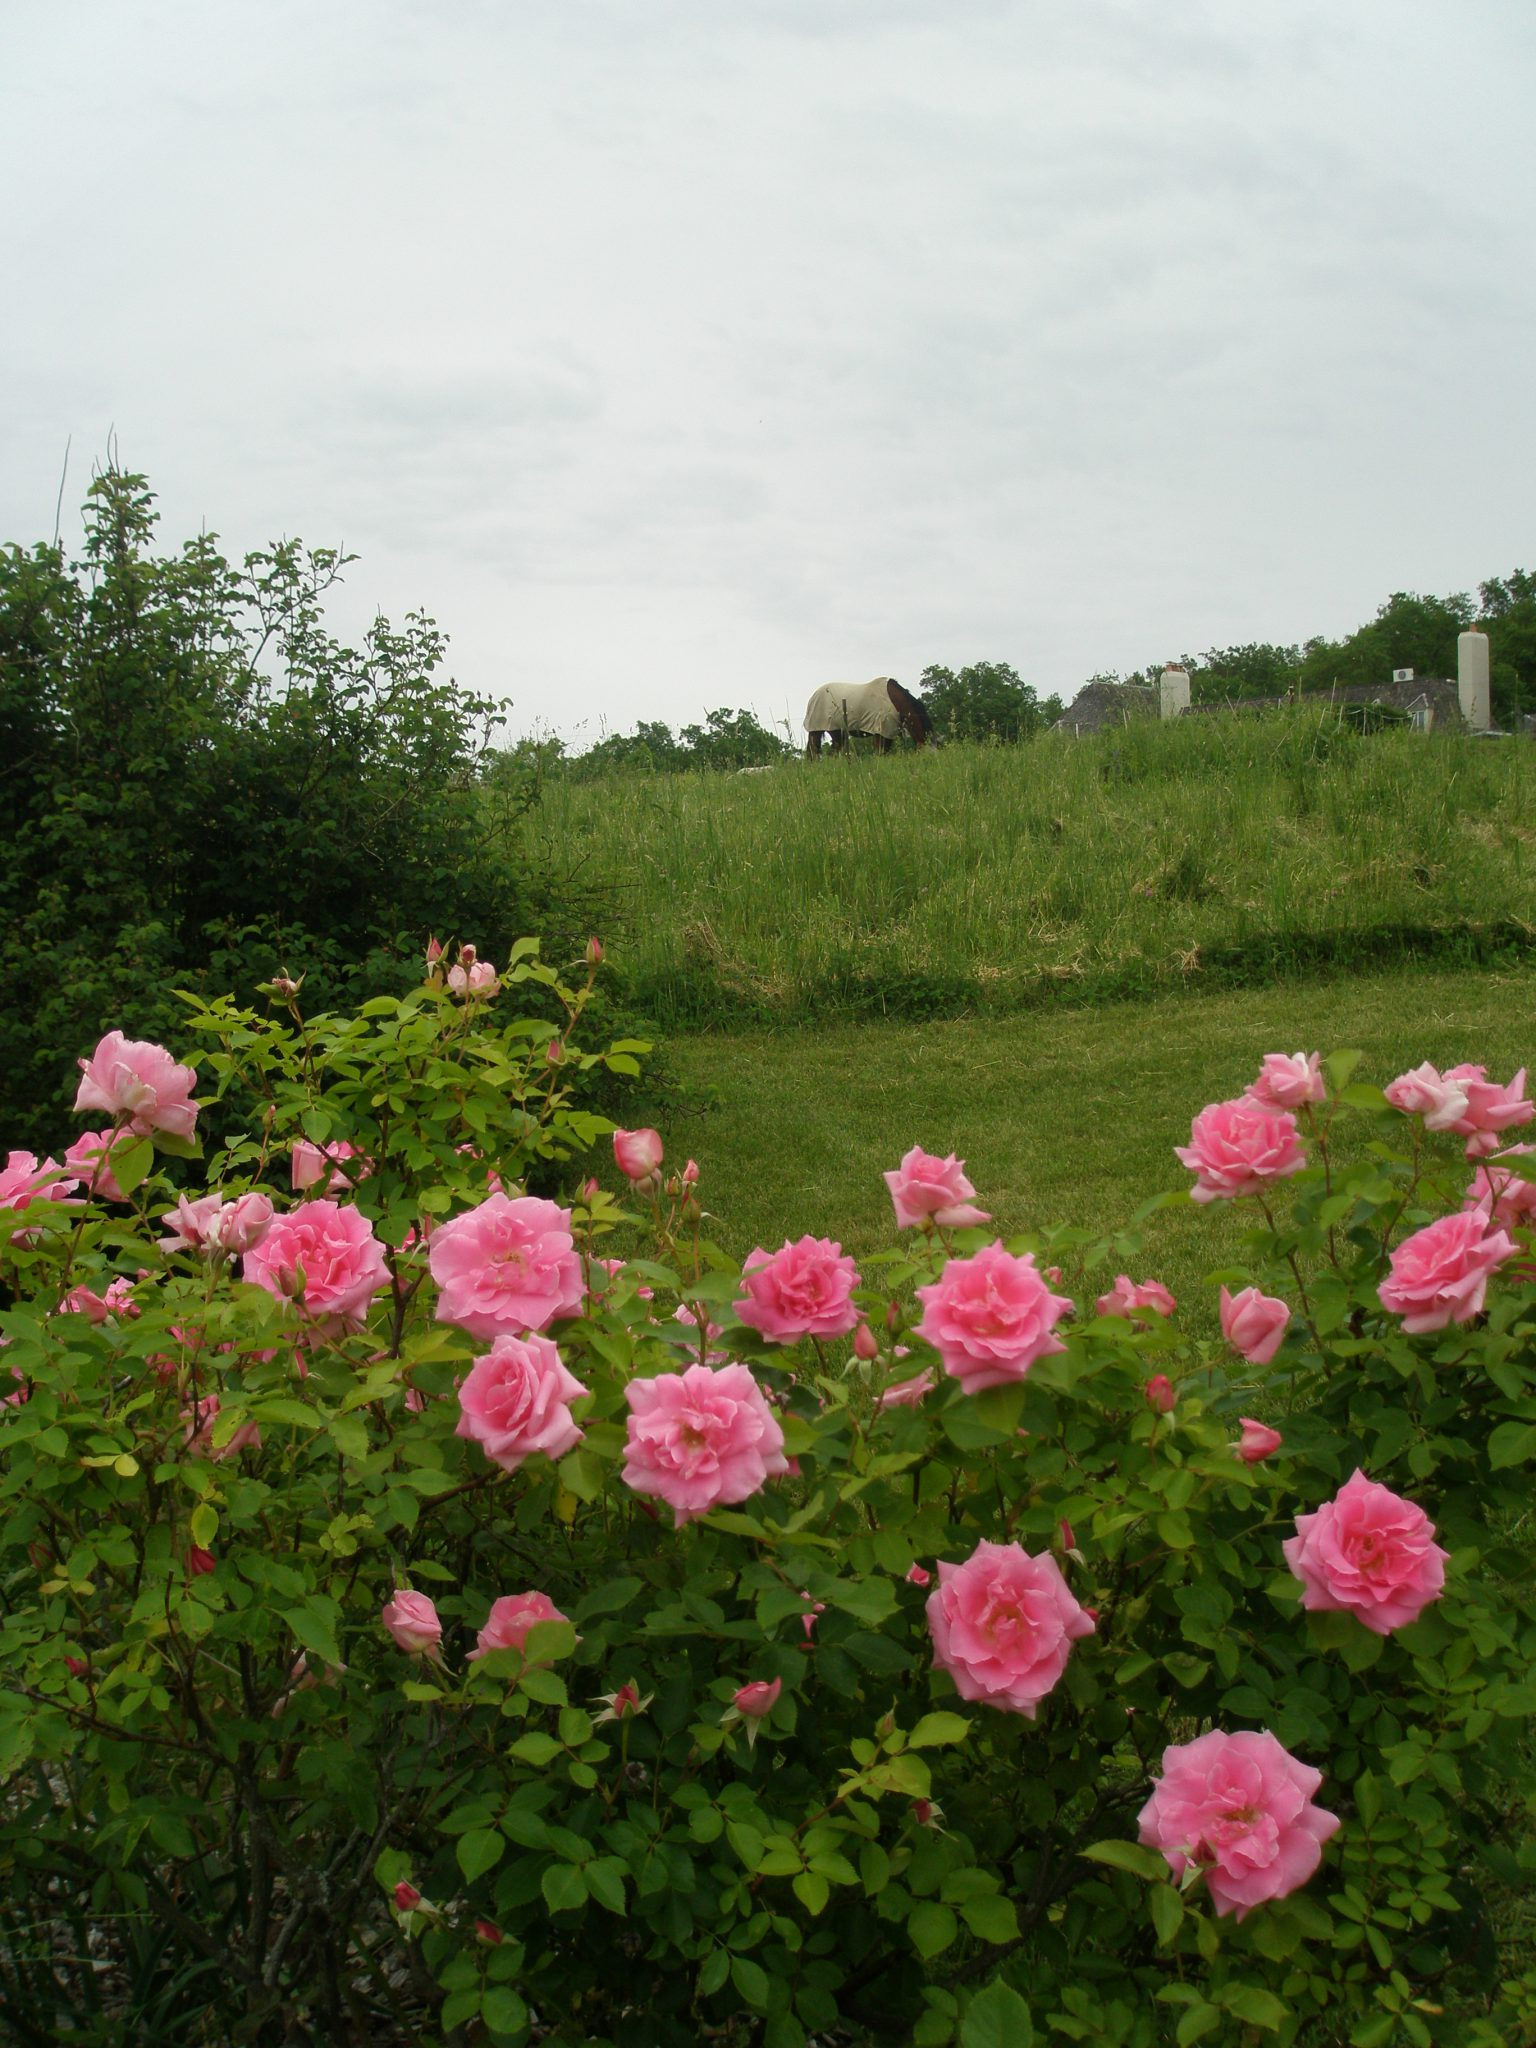 A long hedge of rose bushes festoons the edge of the Pasture